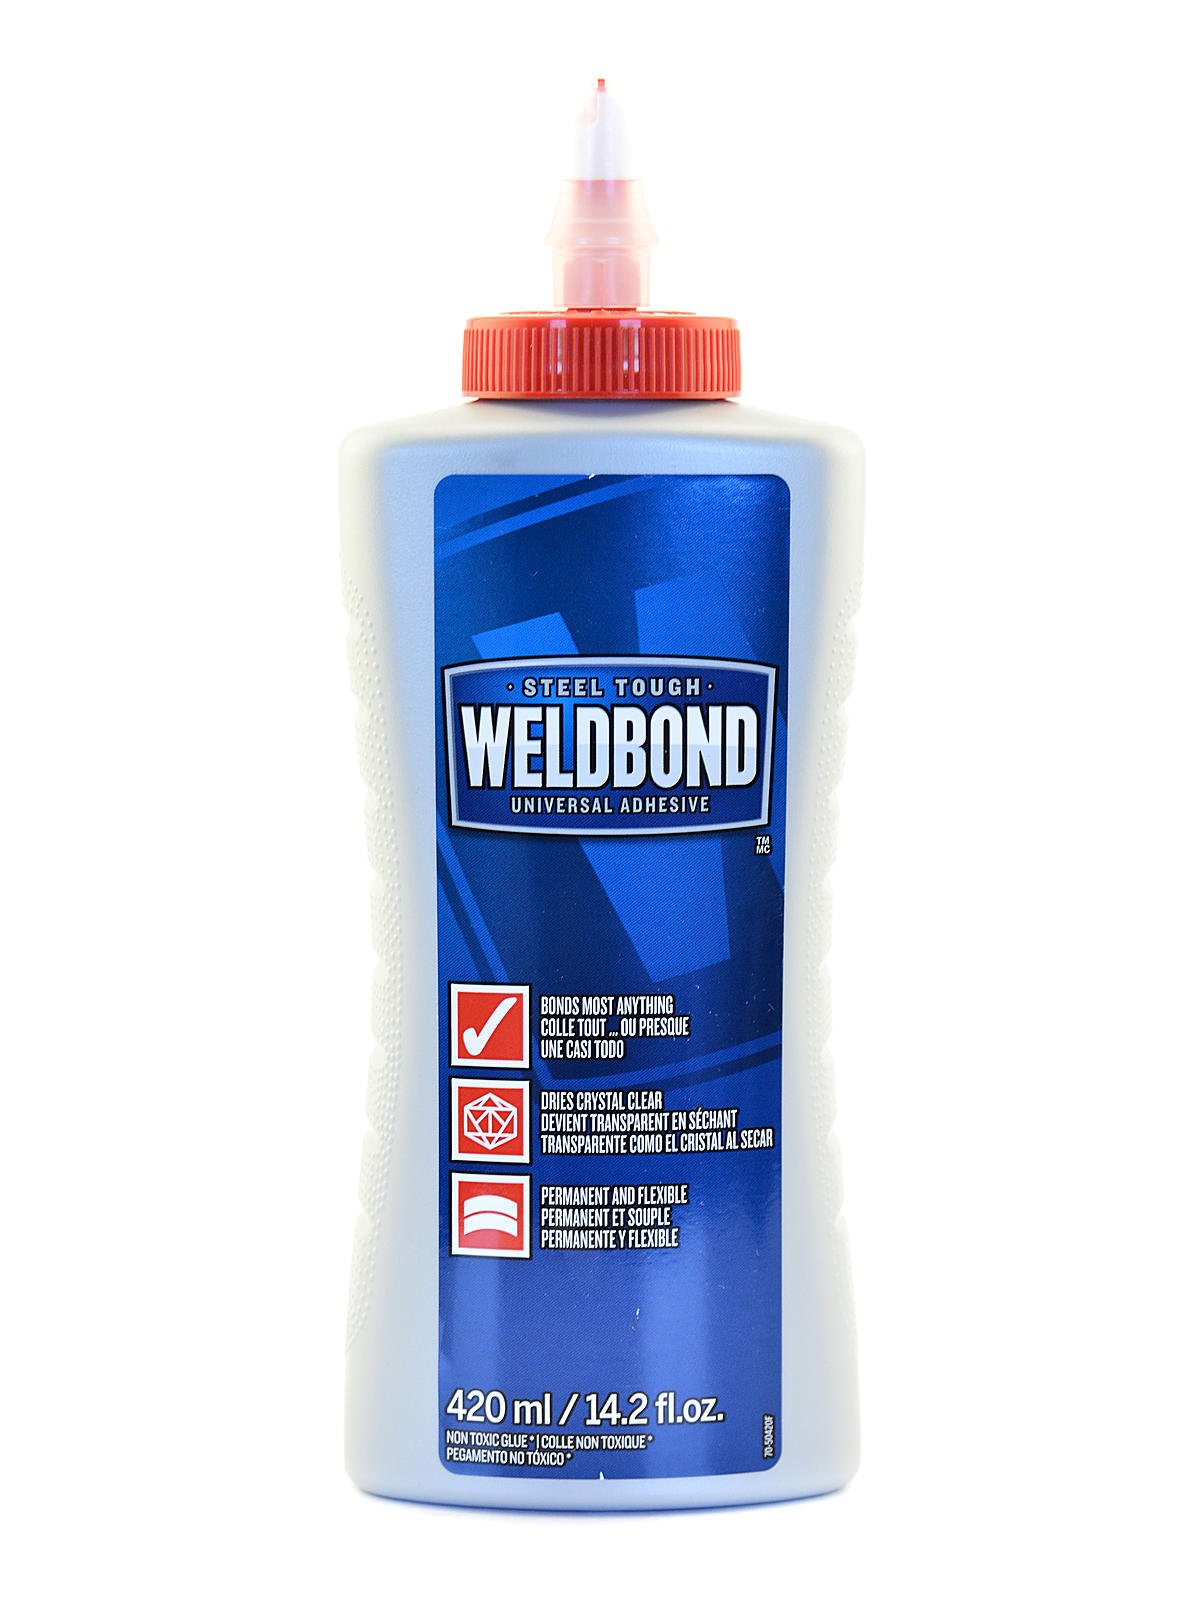 Weldbond Universal Adhesive 14.2 oz. bottle [PACK OF 4 ]